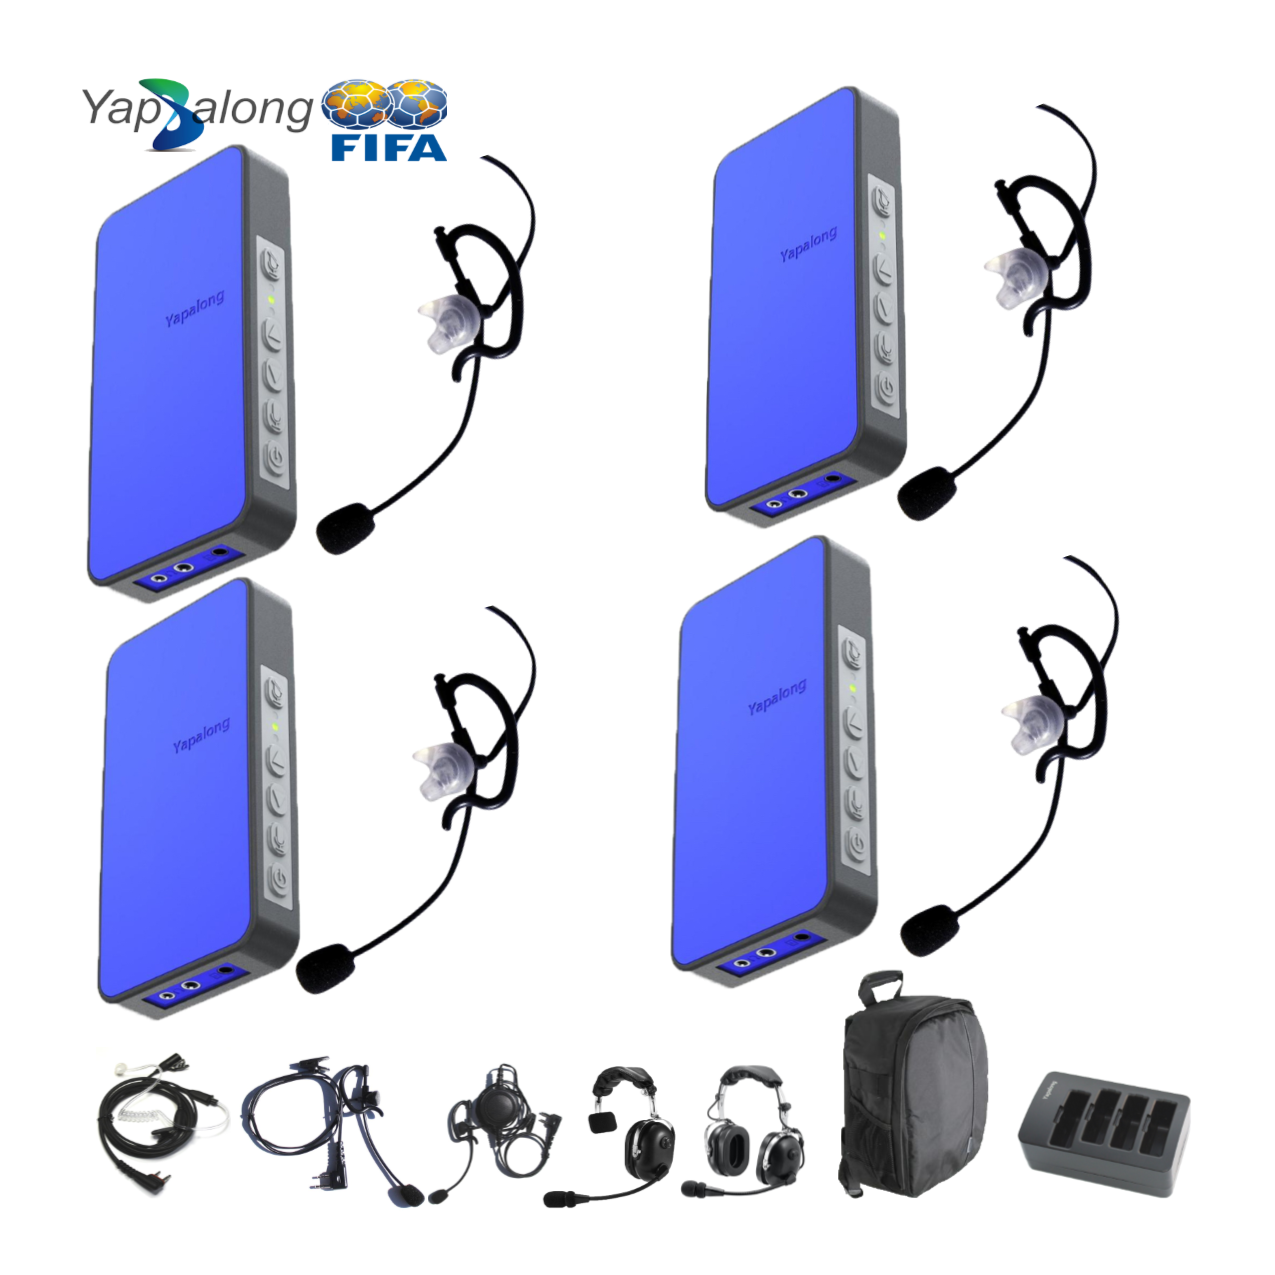 Yapalong 5000 (4-User) Complete Set Intercom Systems Intercom Systems